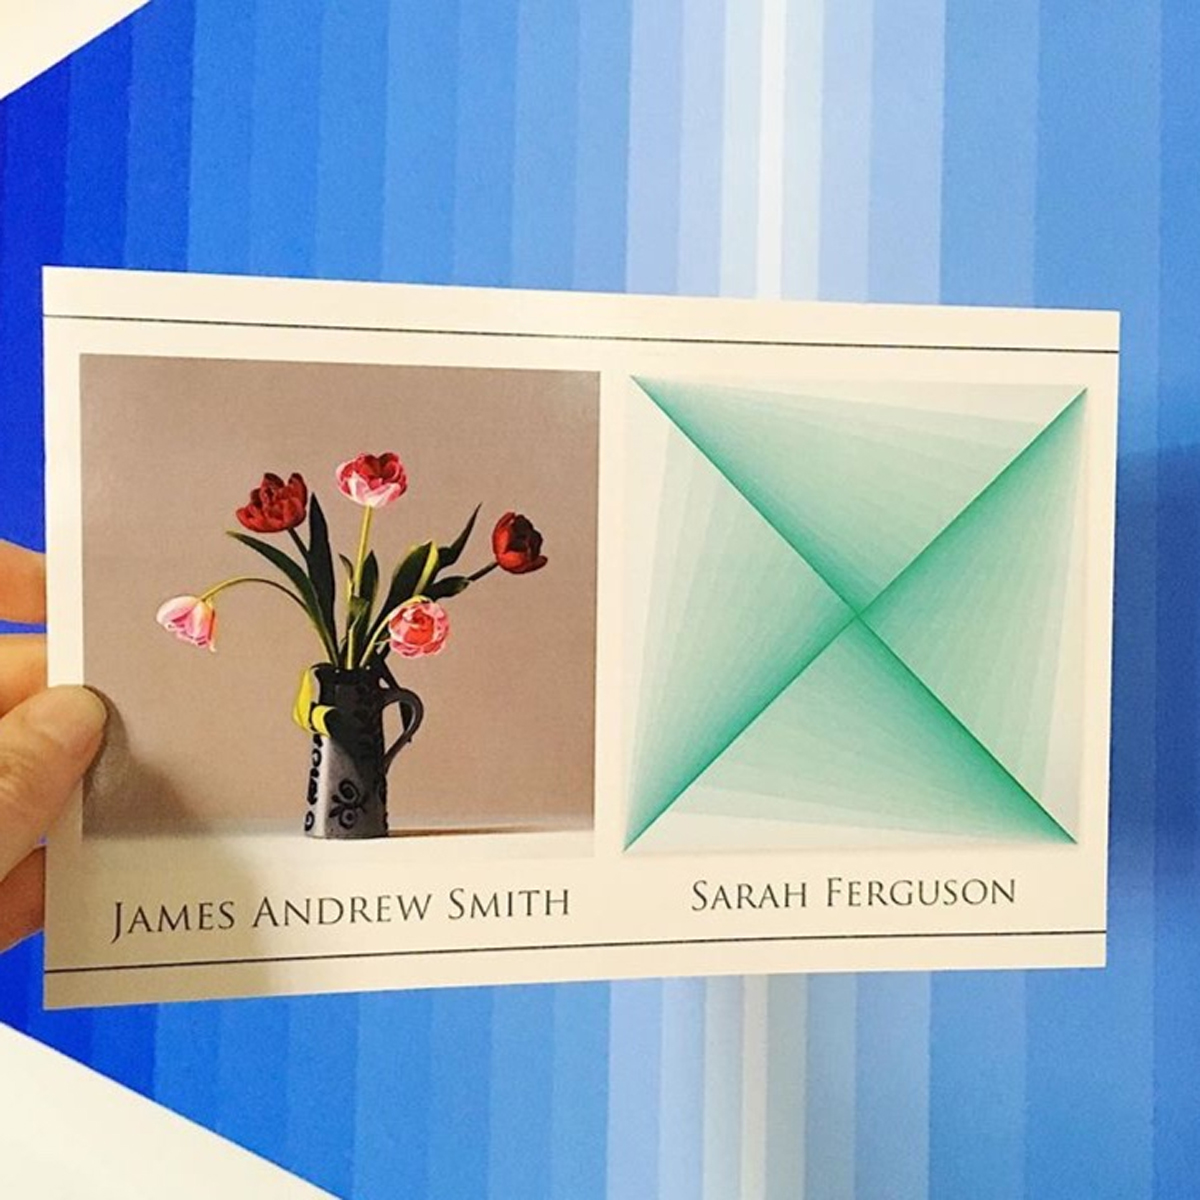 The announcement cards have arrived! Opening reception for my shared show with  James Andrew Smith  is Saturday, June 4 from 6-8pm at  Wally Workman Gallery .